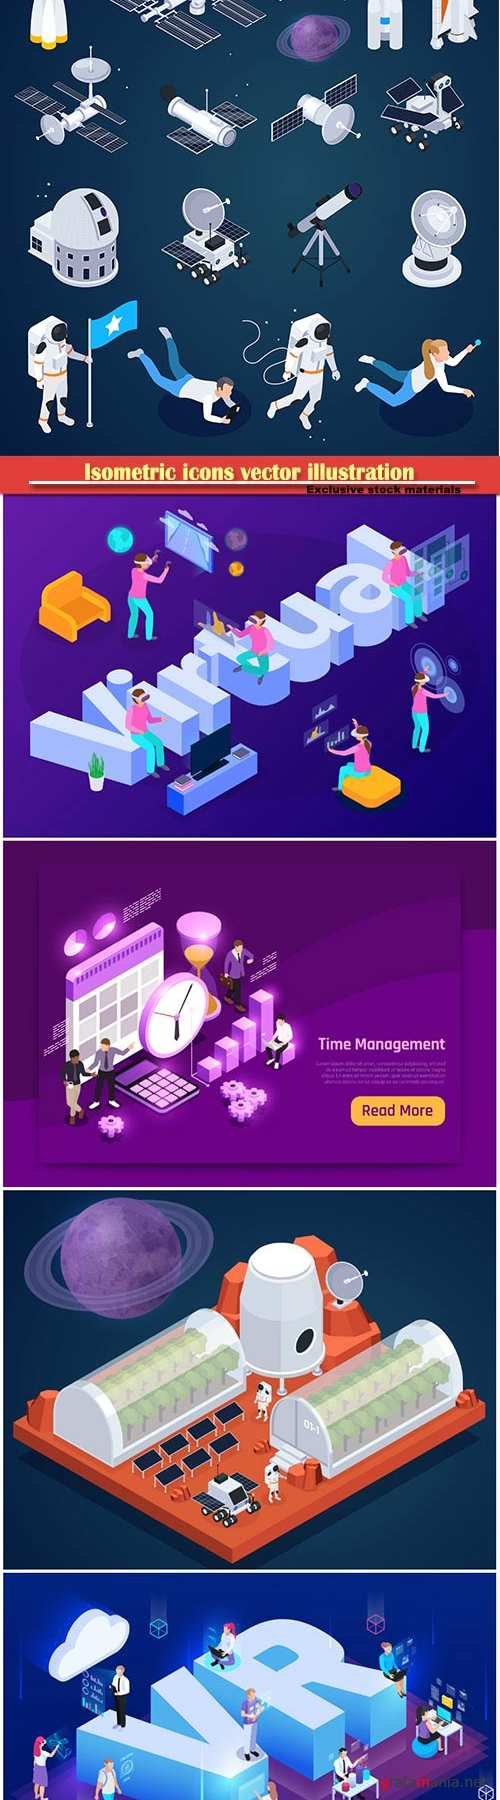 Isometric icons vector illustration, banner design template # 51